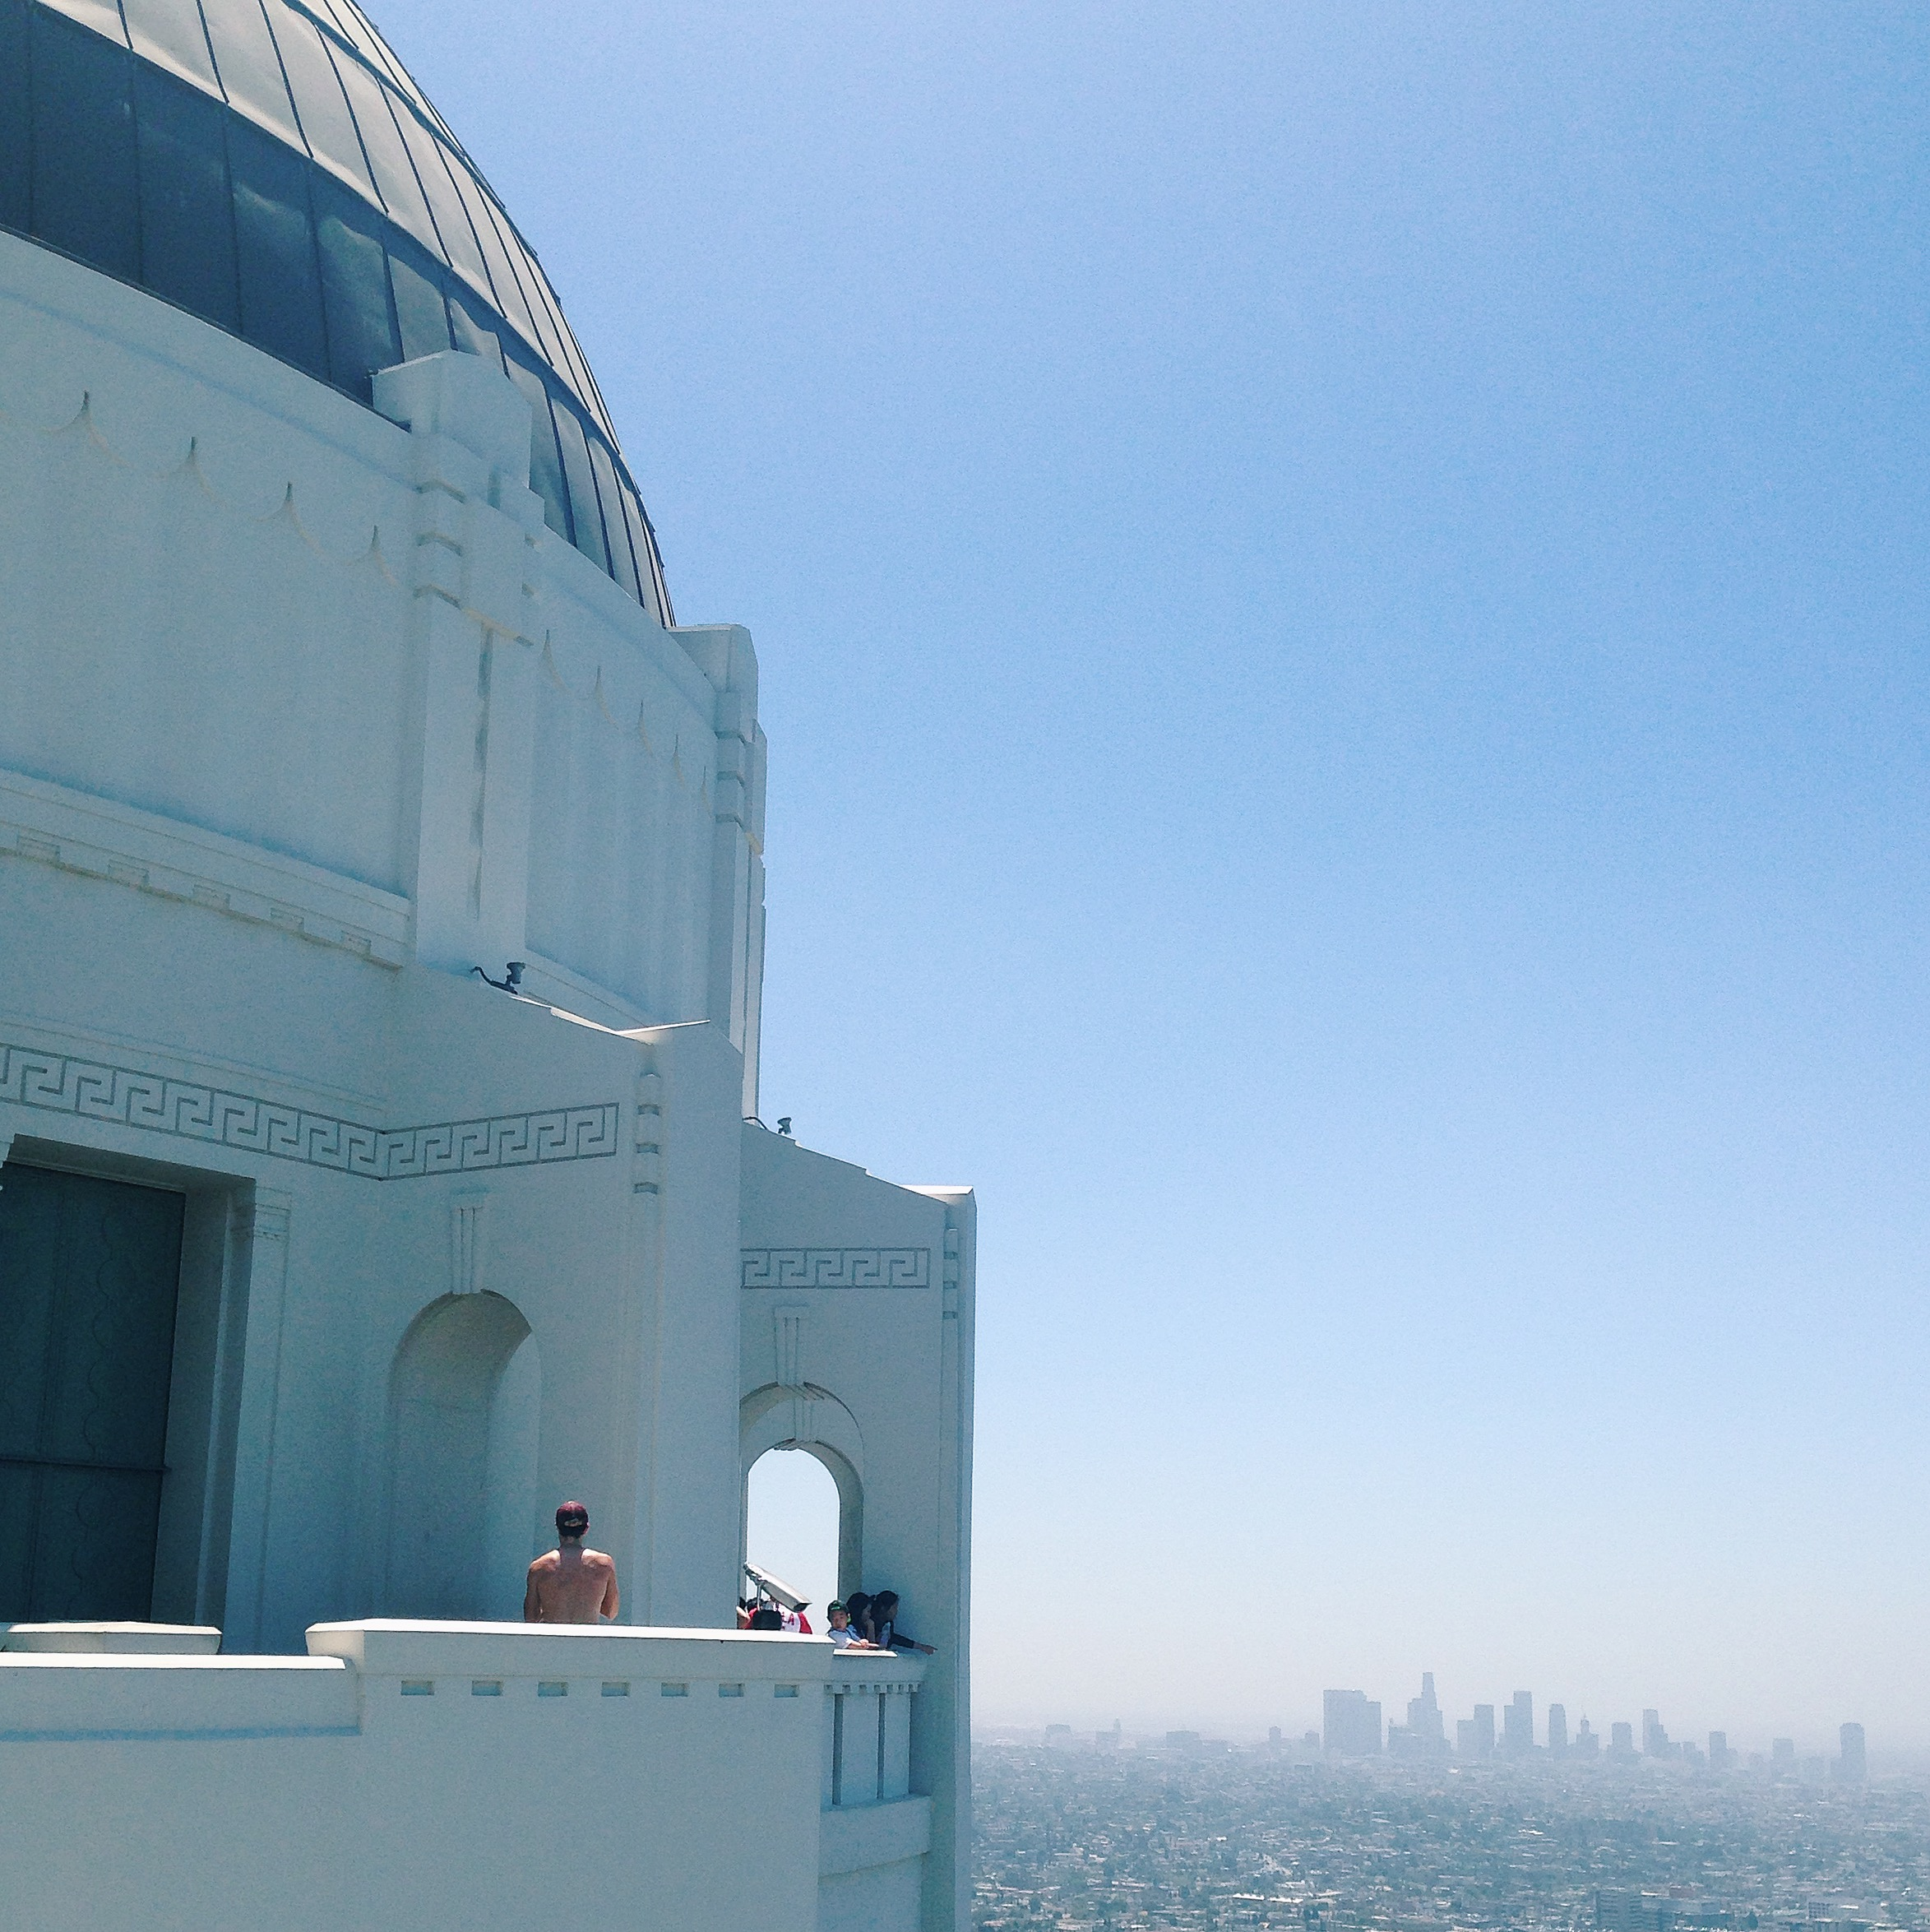 Seeing this view at the Griffith Observatoryiskind of whatmade me want tovomit and squeel from excitement at the same time...super overwhelming/intimidating...but hot damn is it beautiful!